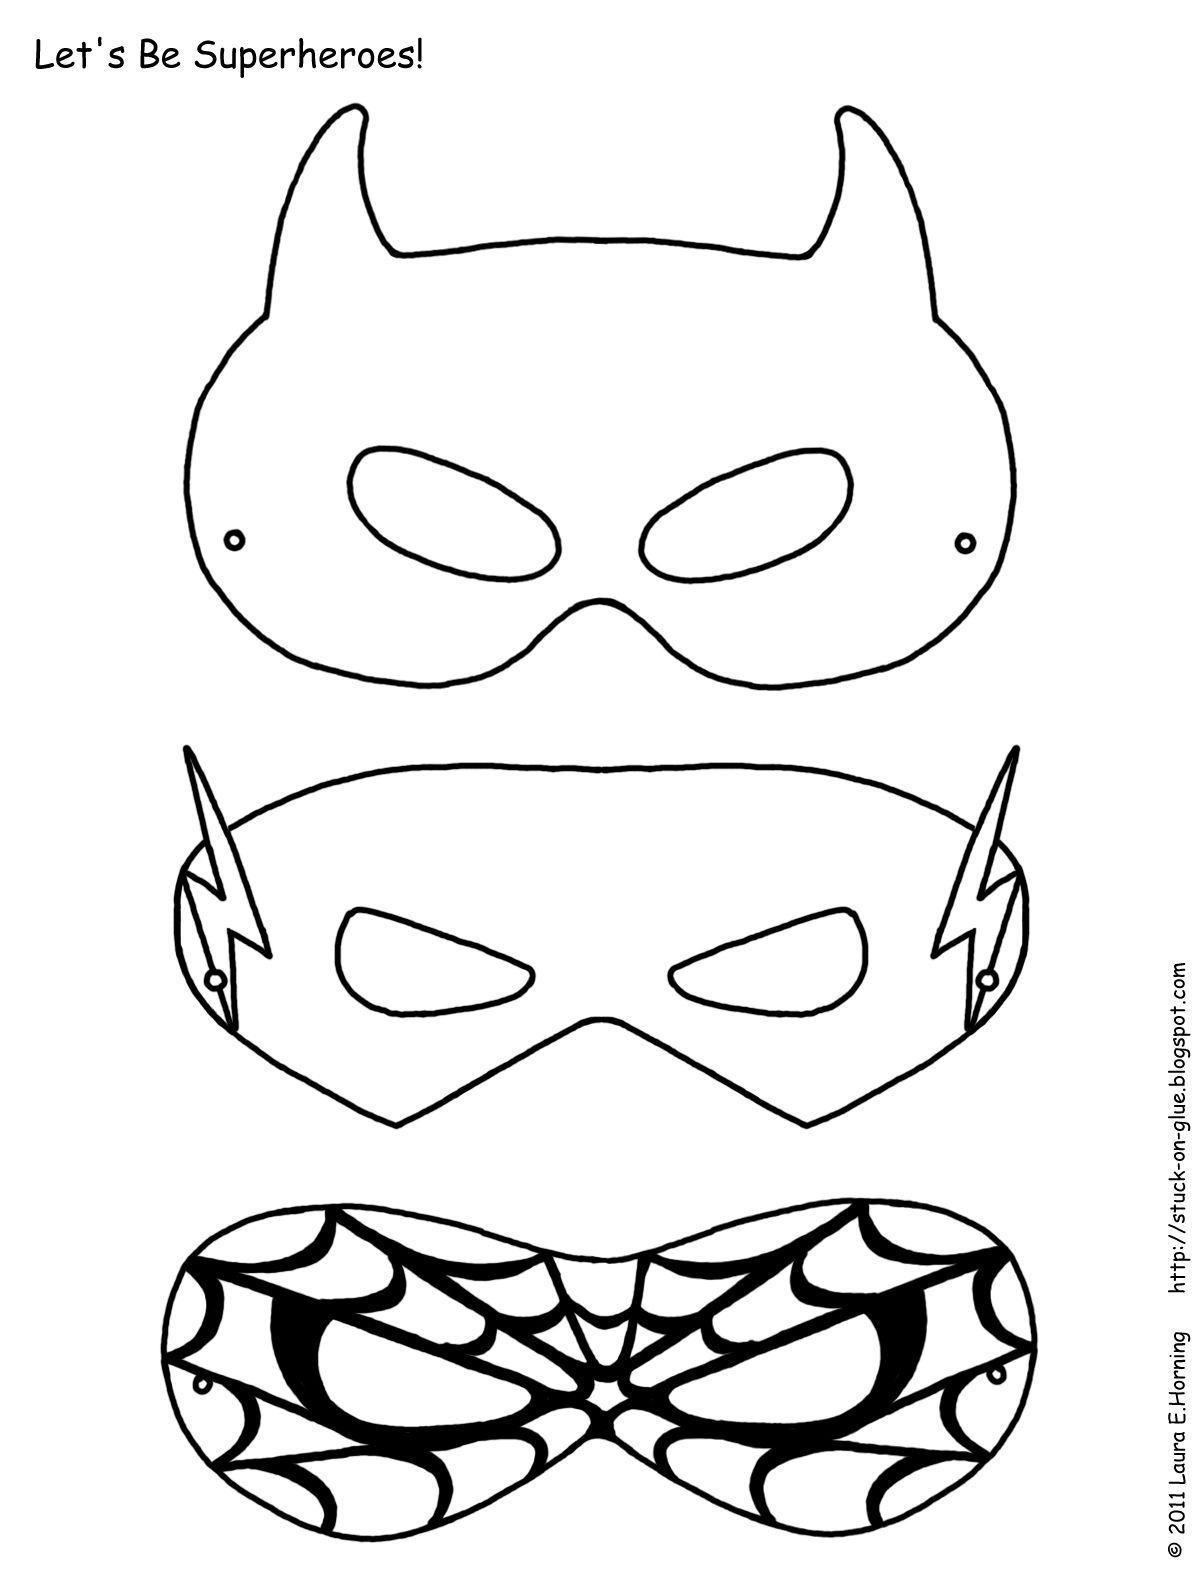 Mask Printable | Free Printable Superhero Mask Template | Masks - Free Printable Superhero Masks